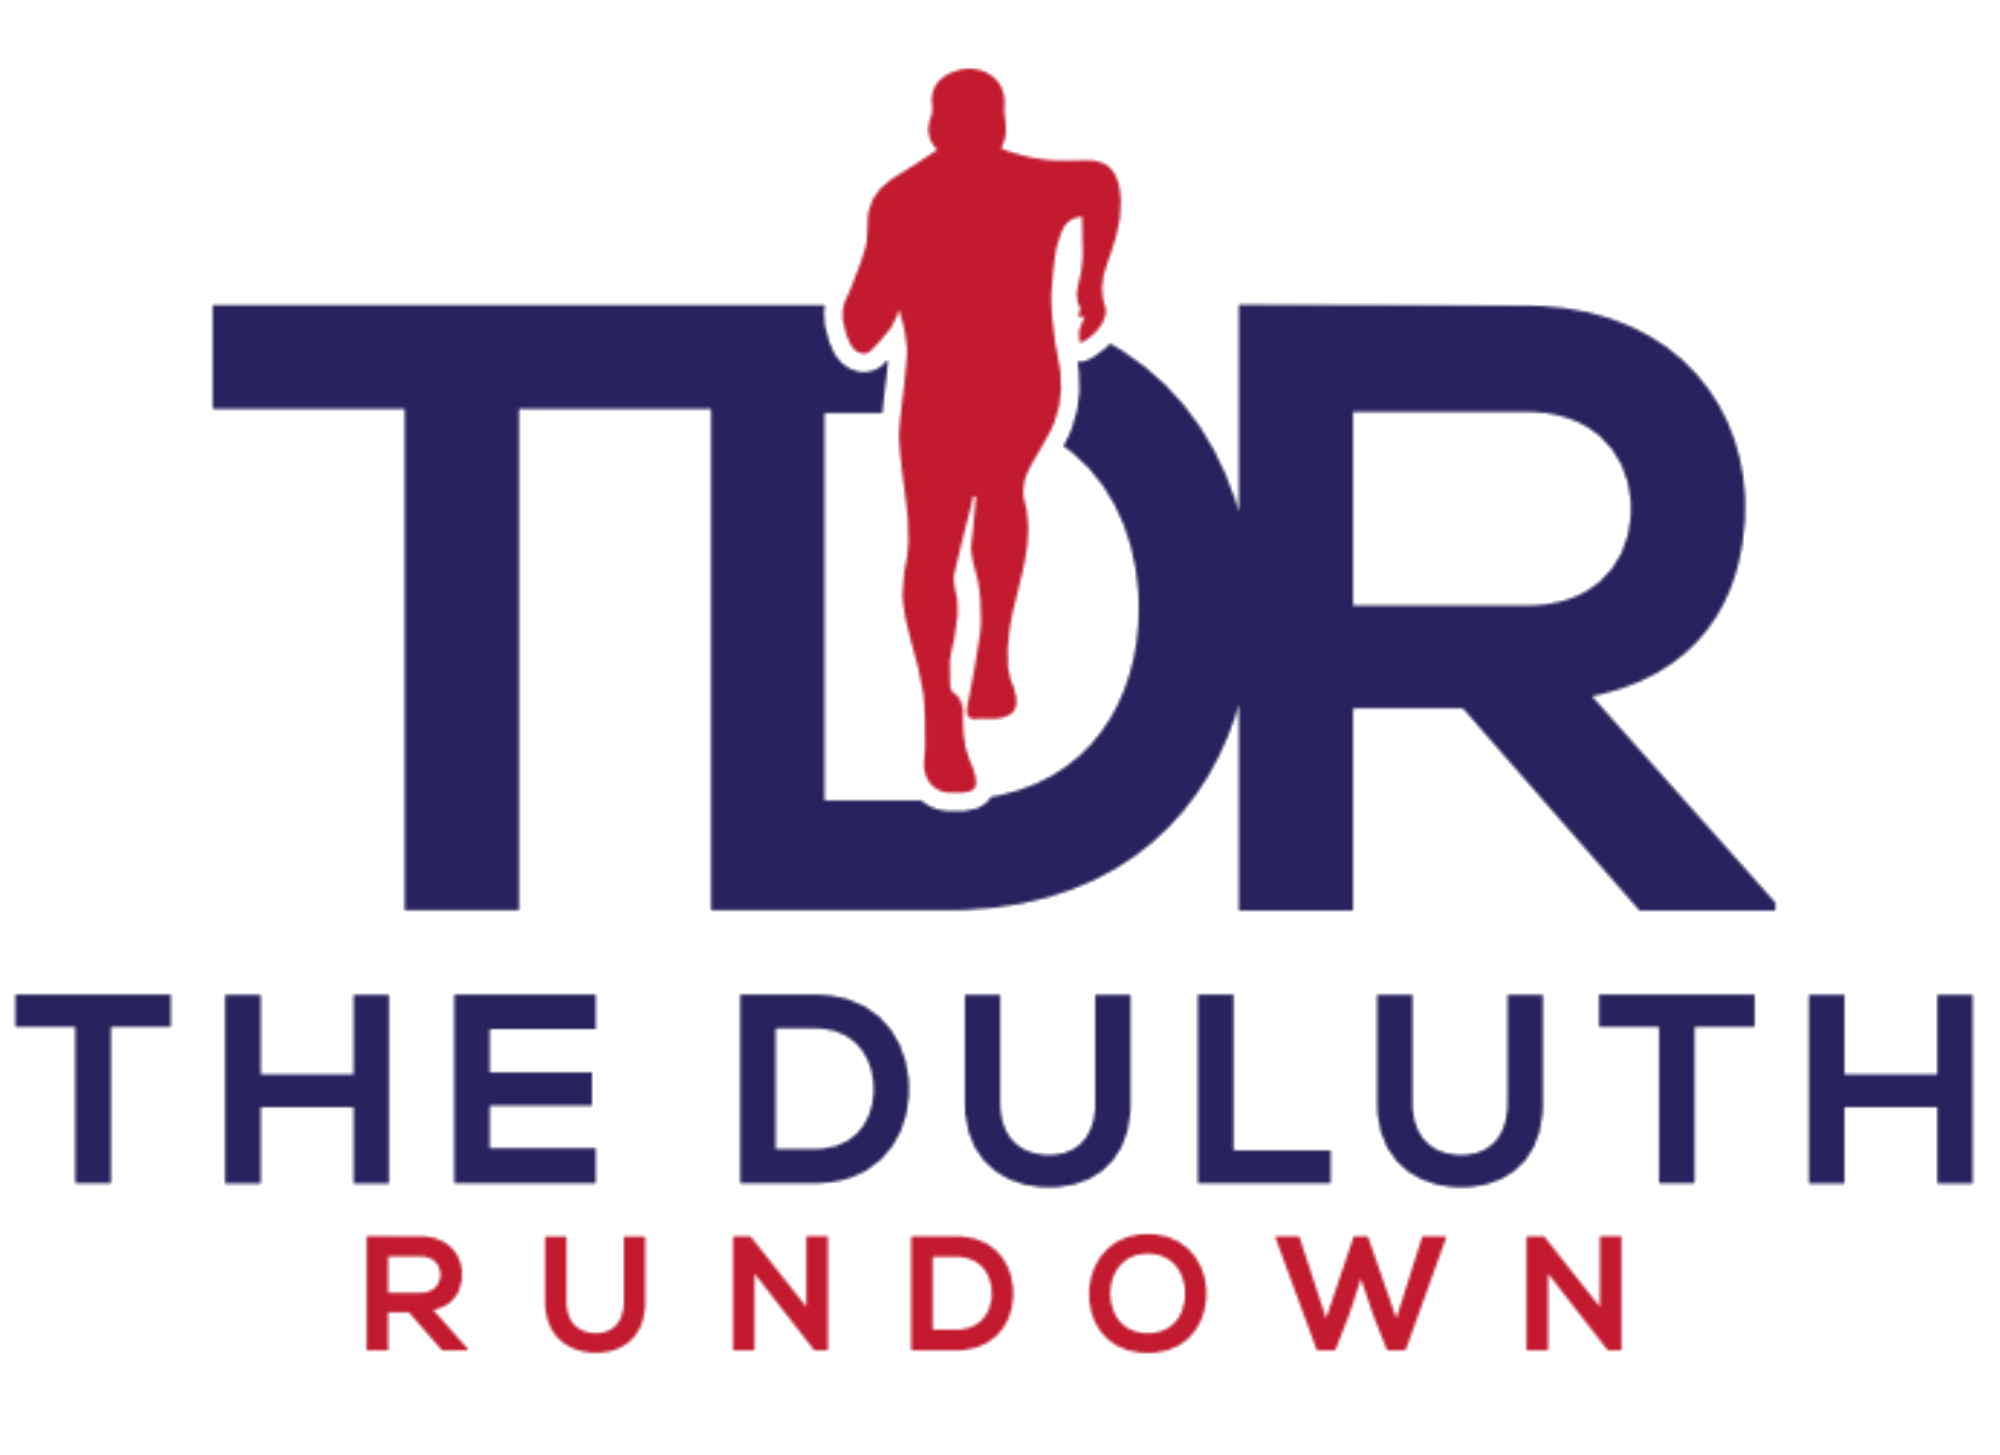 The Duluth Rundown